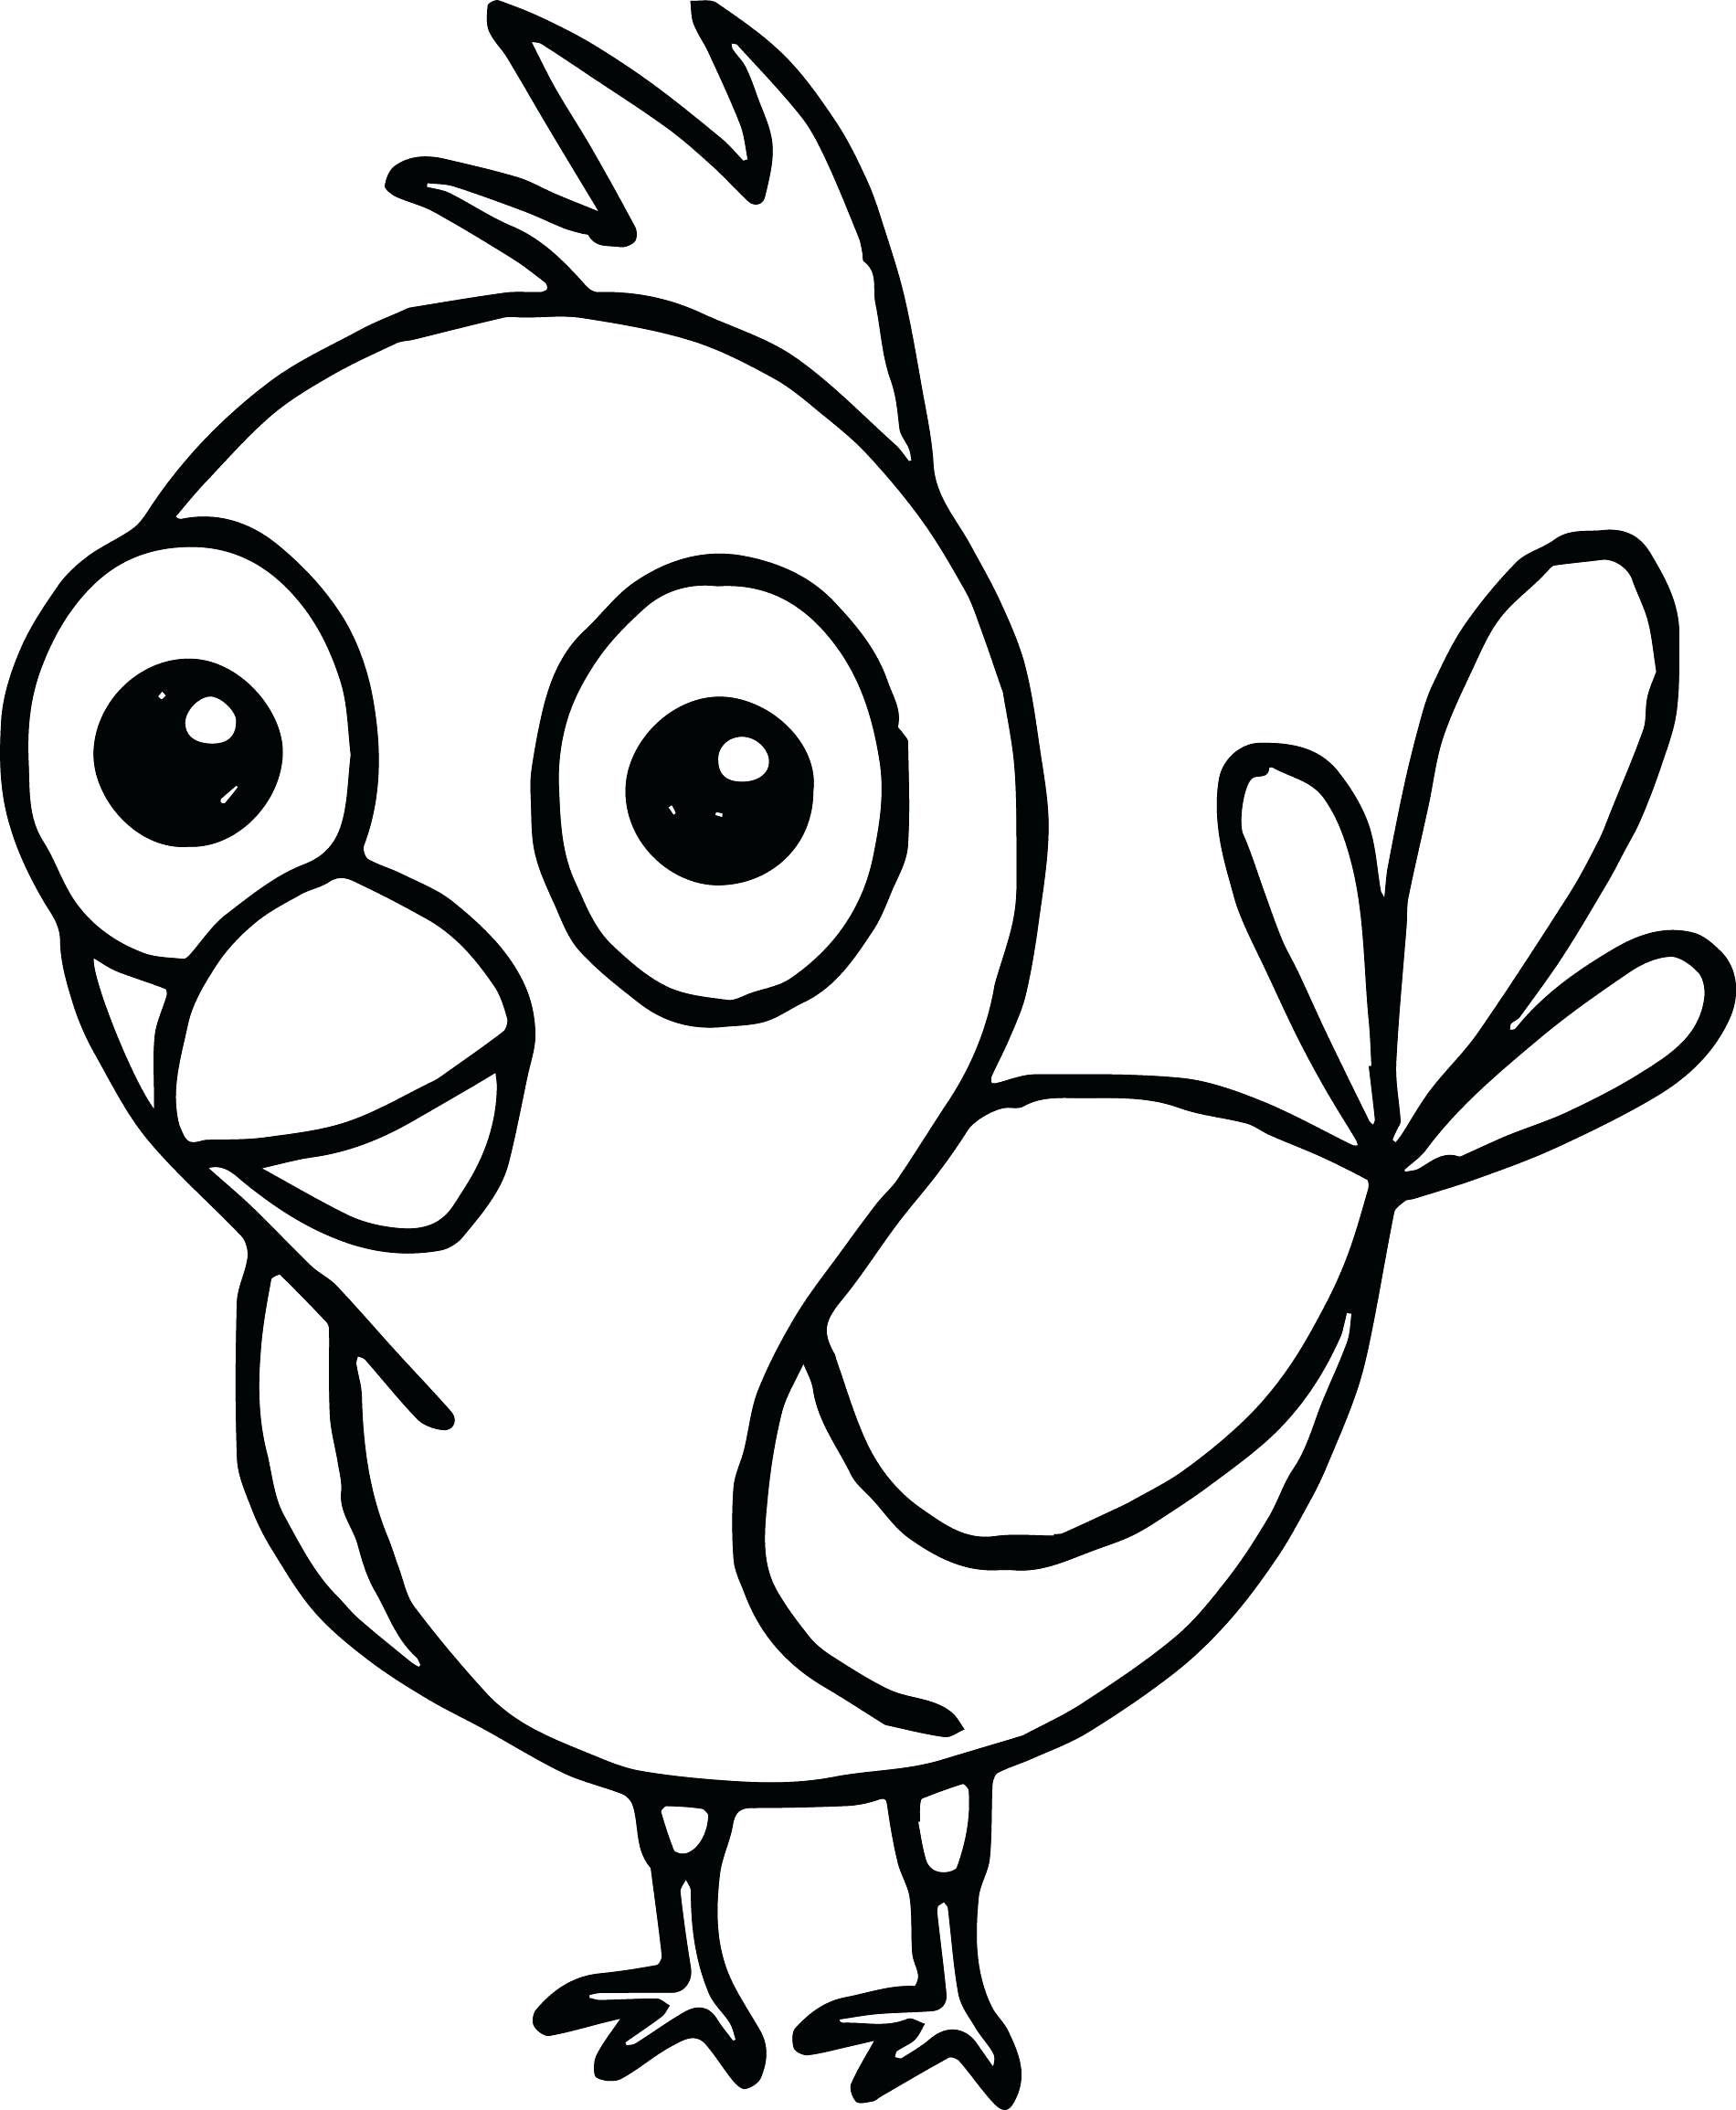 Funny Bird Drawing at GetDrawings.com | Free for personal ...